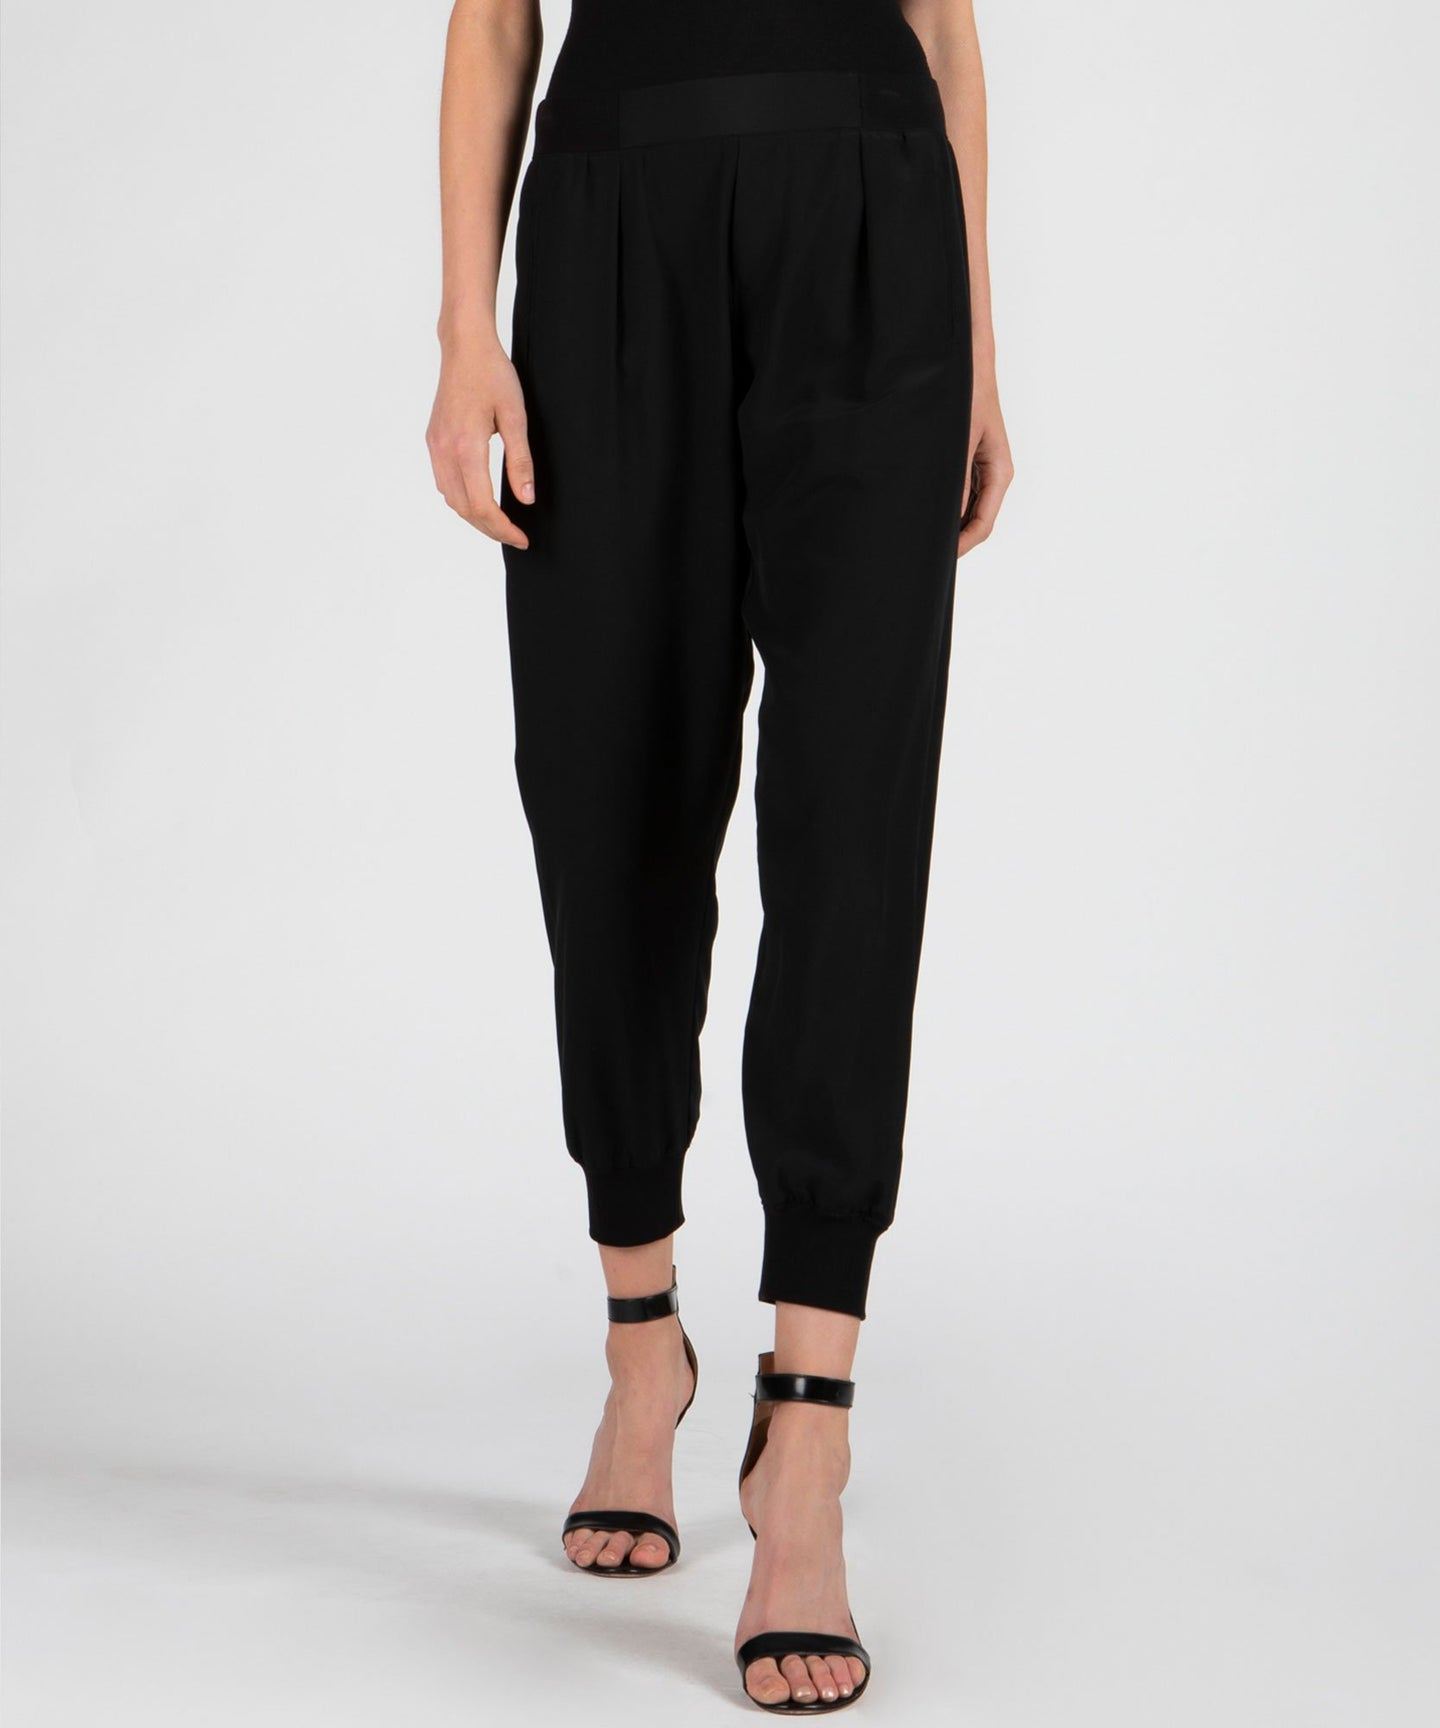 ATM Silk Sweatpants - Black